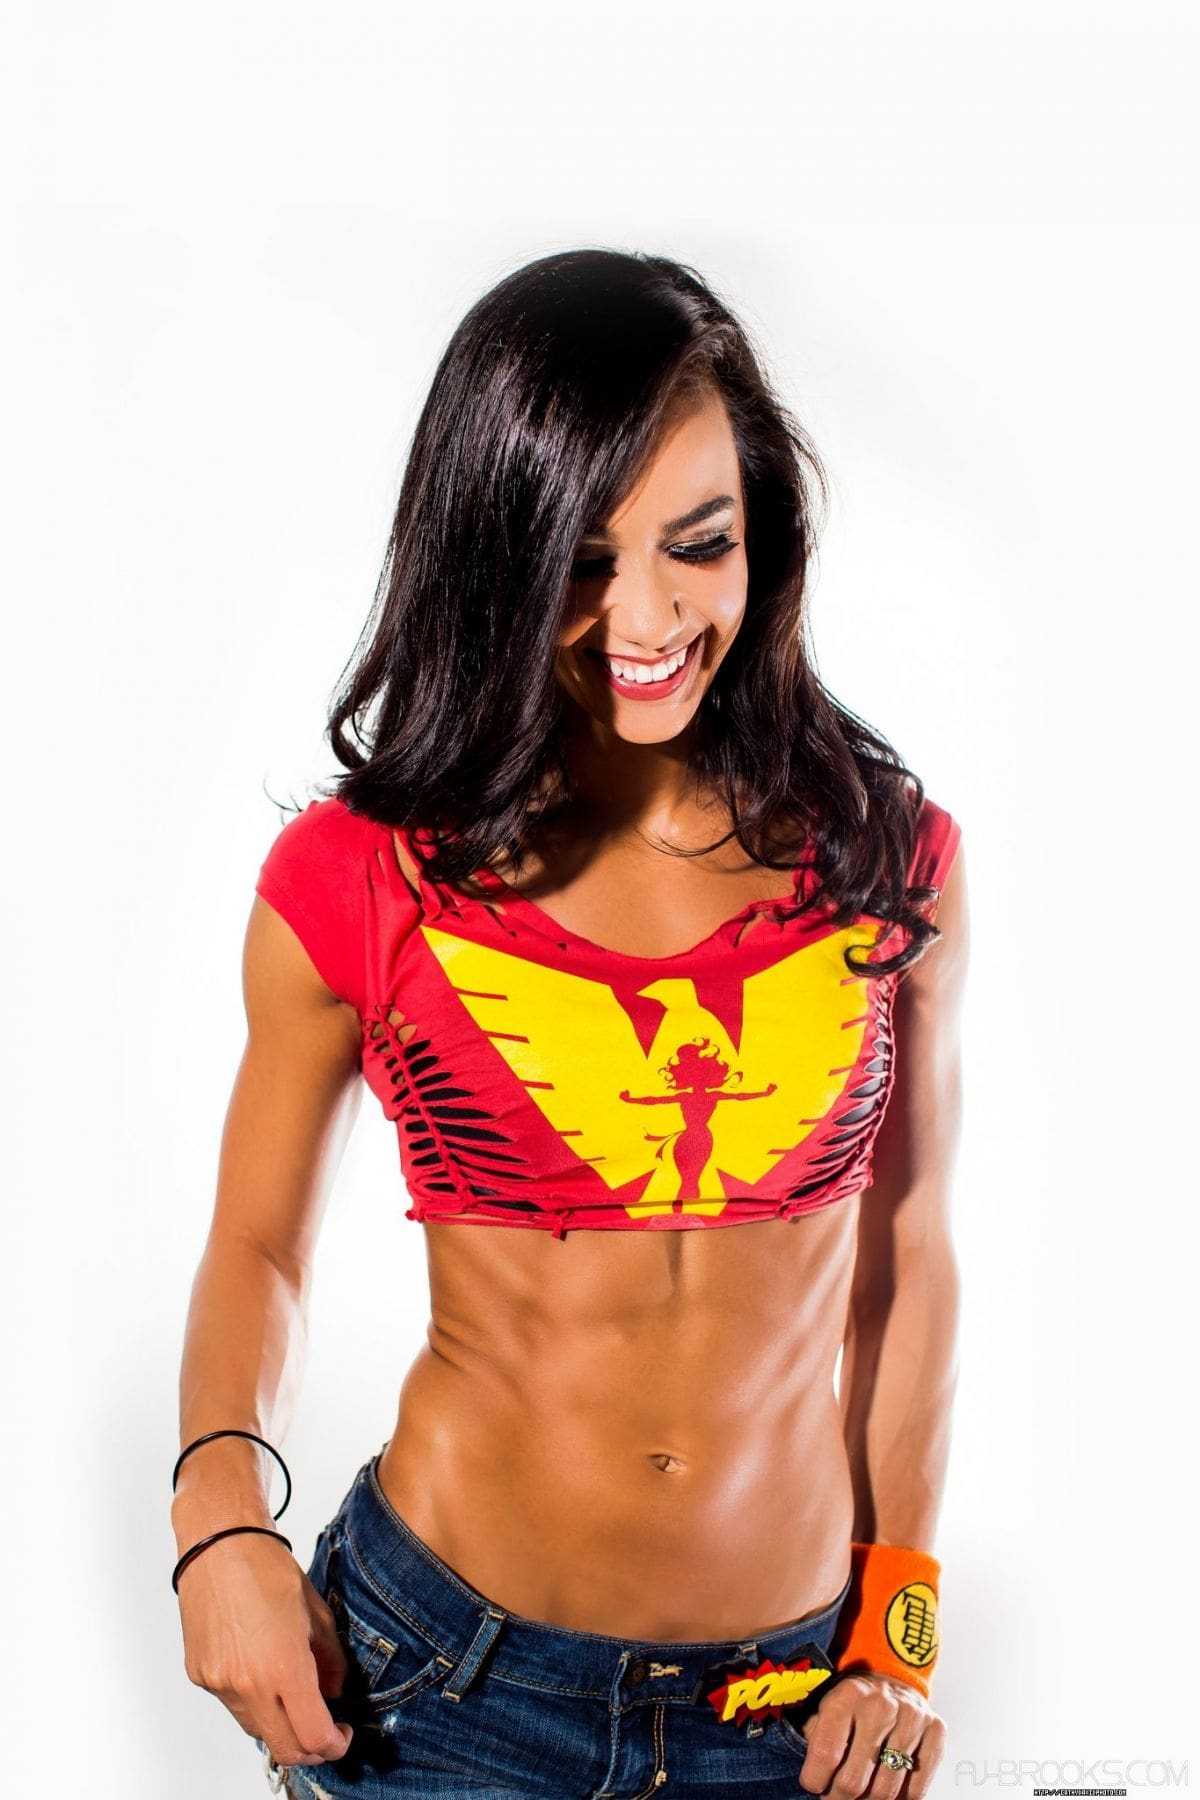 AJ Lee beautiful pic